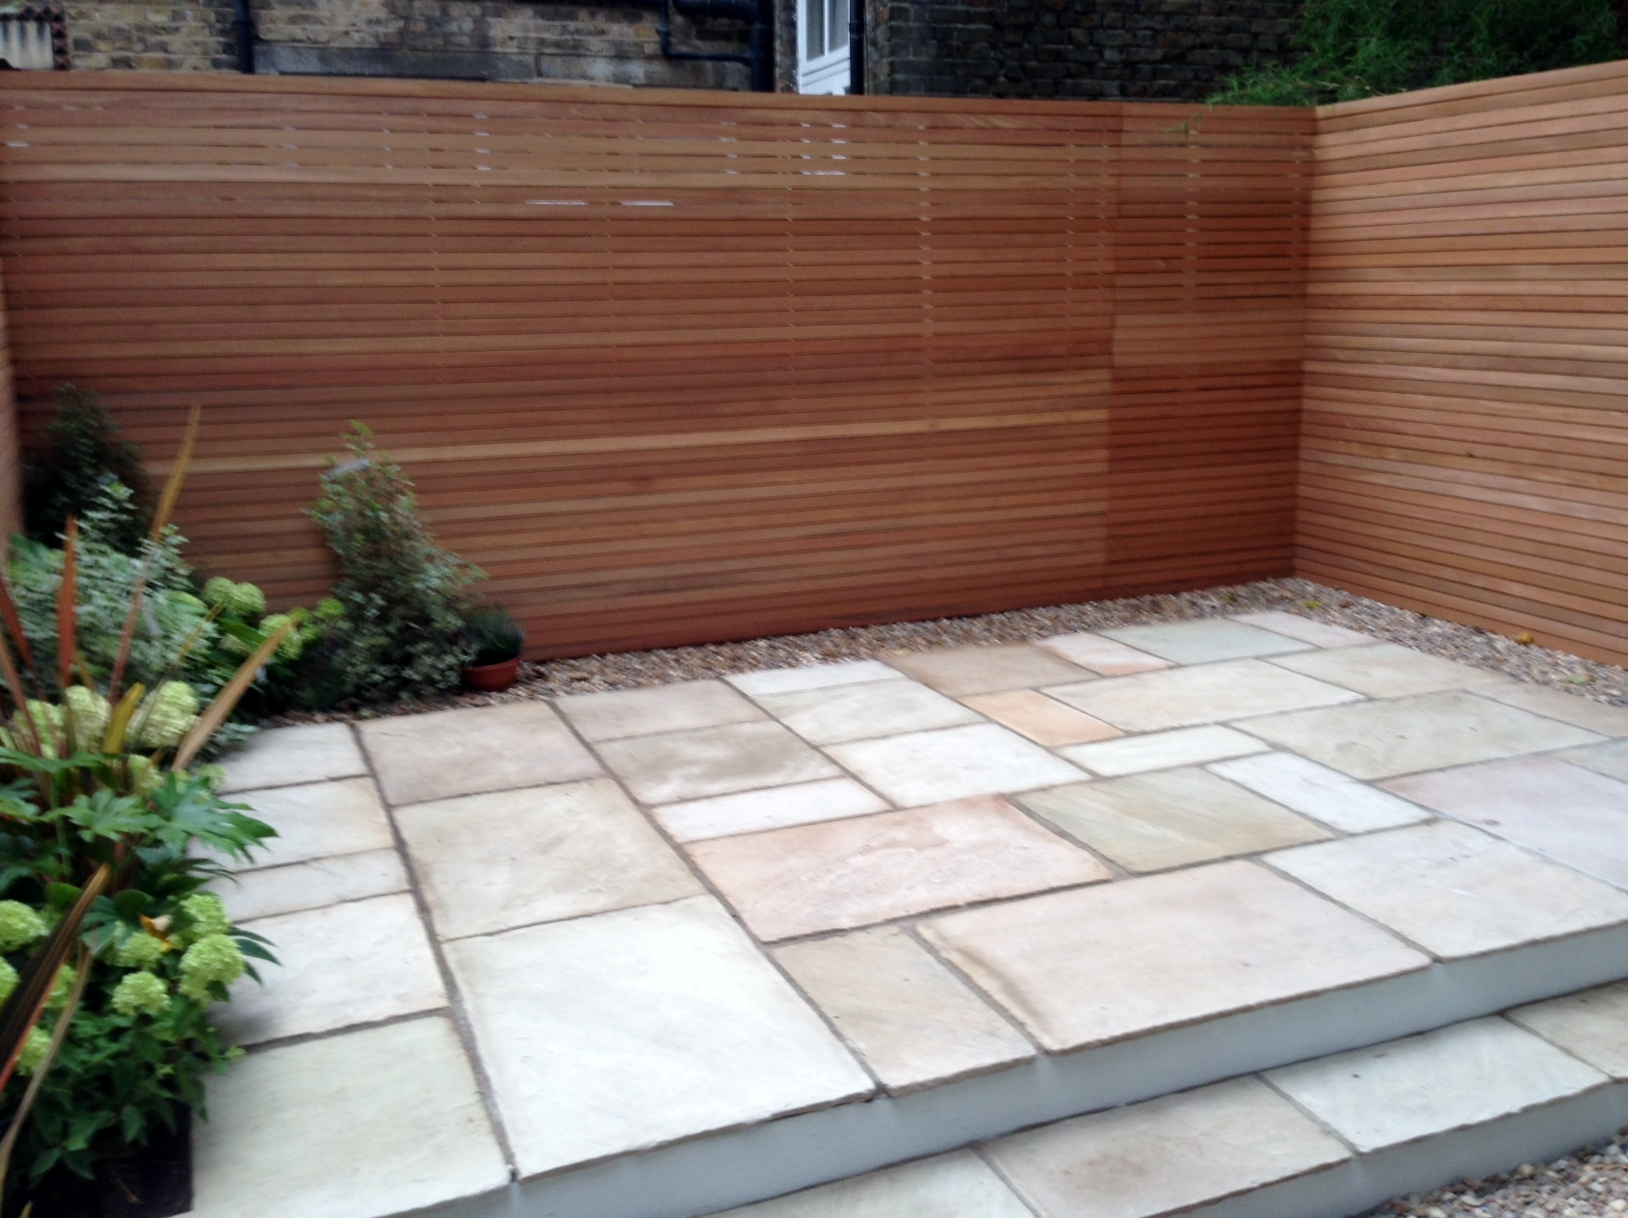 clapham garden design sandstone paving hardwood privacy screen shingle trellis fence modern low maintenance ideas (10)